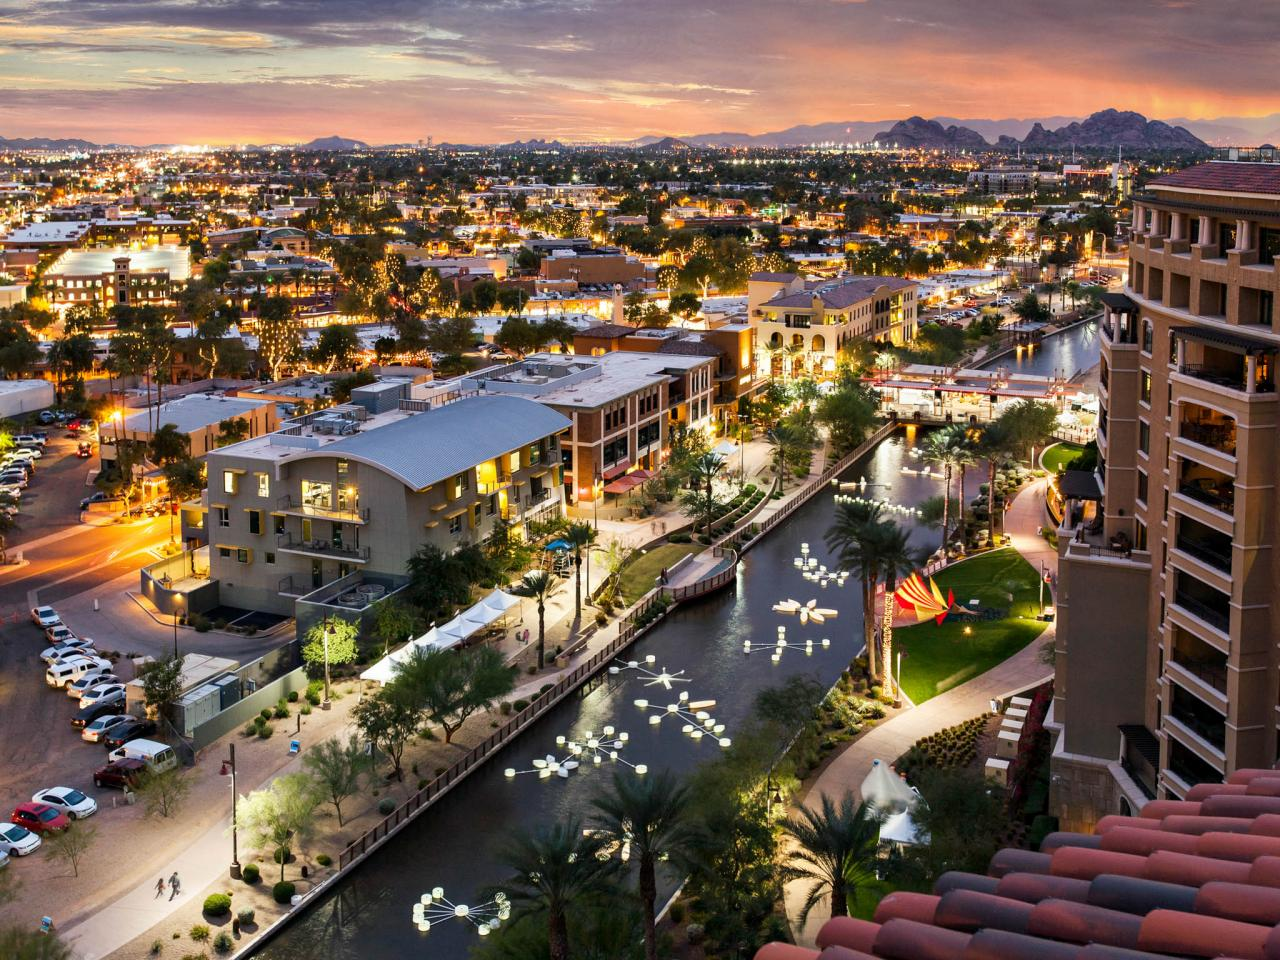 Downtown Scottsdale, AZ